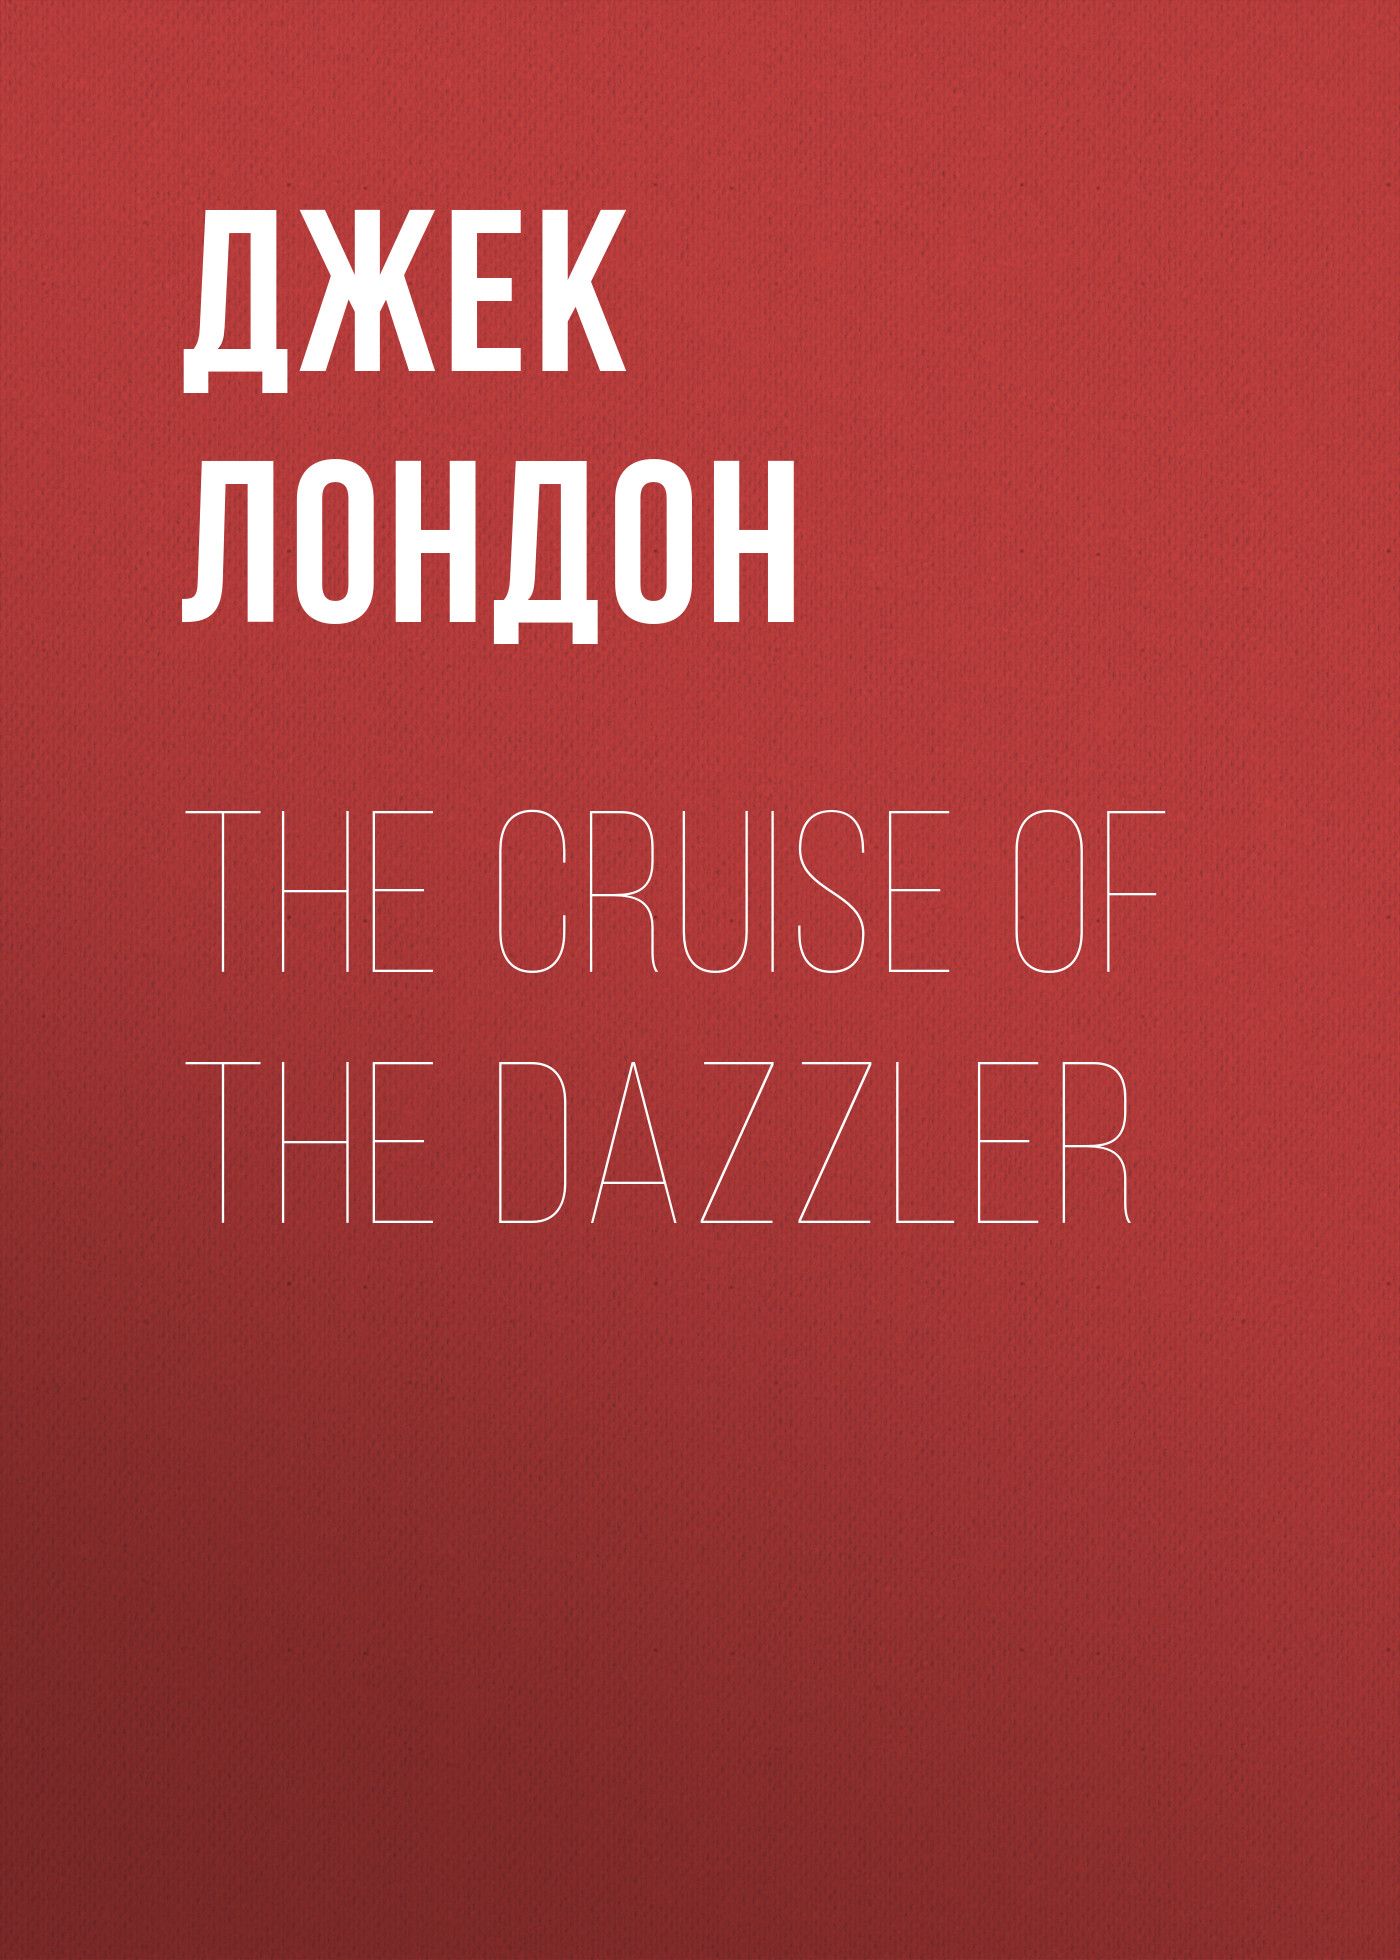 Джек Лондон The Cruise of the Dazzler цена 2017